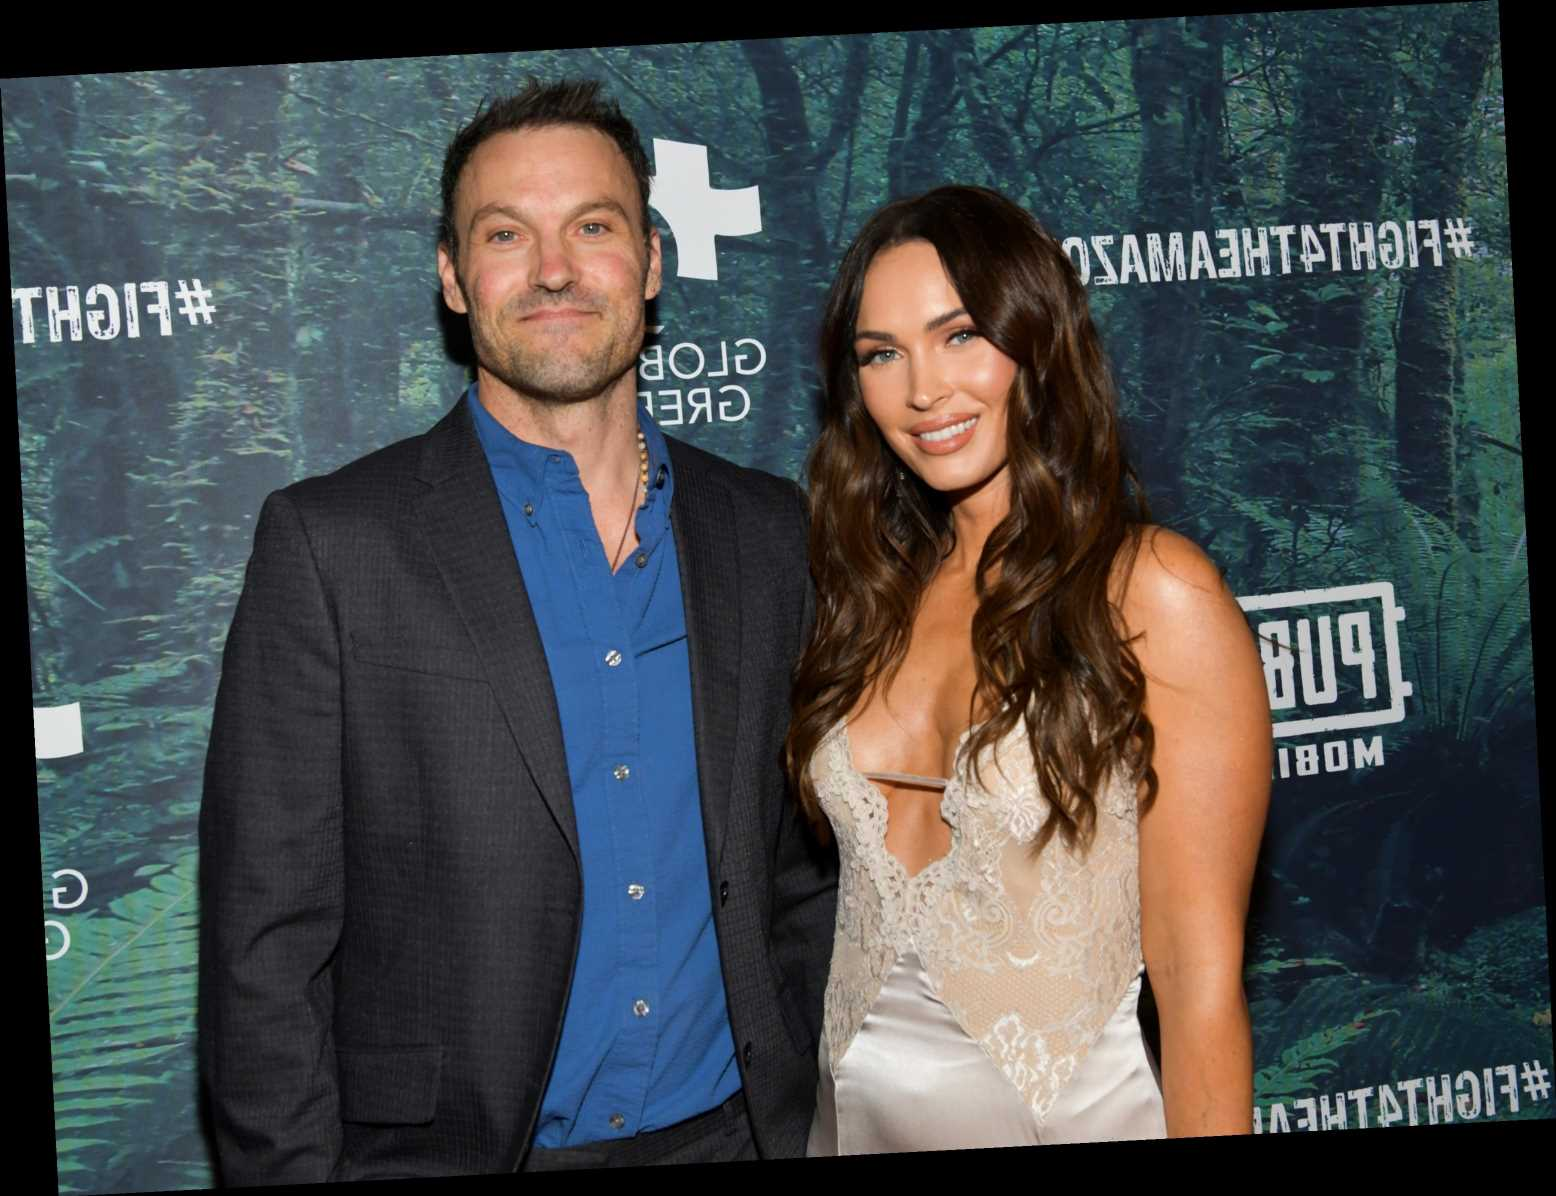 Brian Austin Green confirms split from Megan Fox as he says break from 'best friend' left him with a 'pit in my stomach' – The Sun